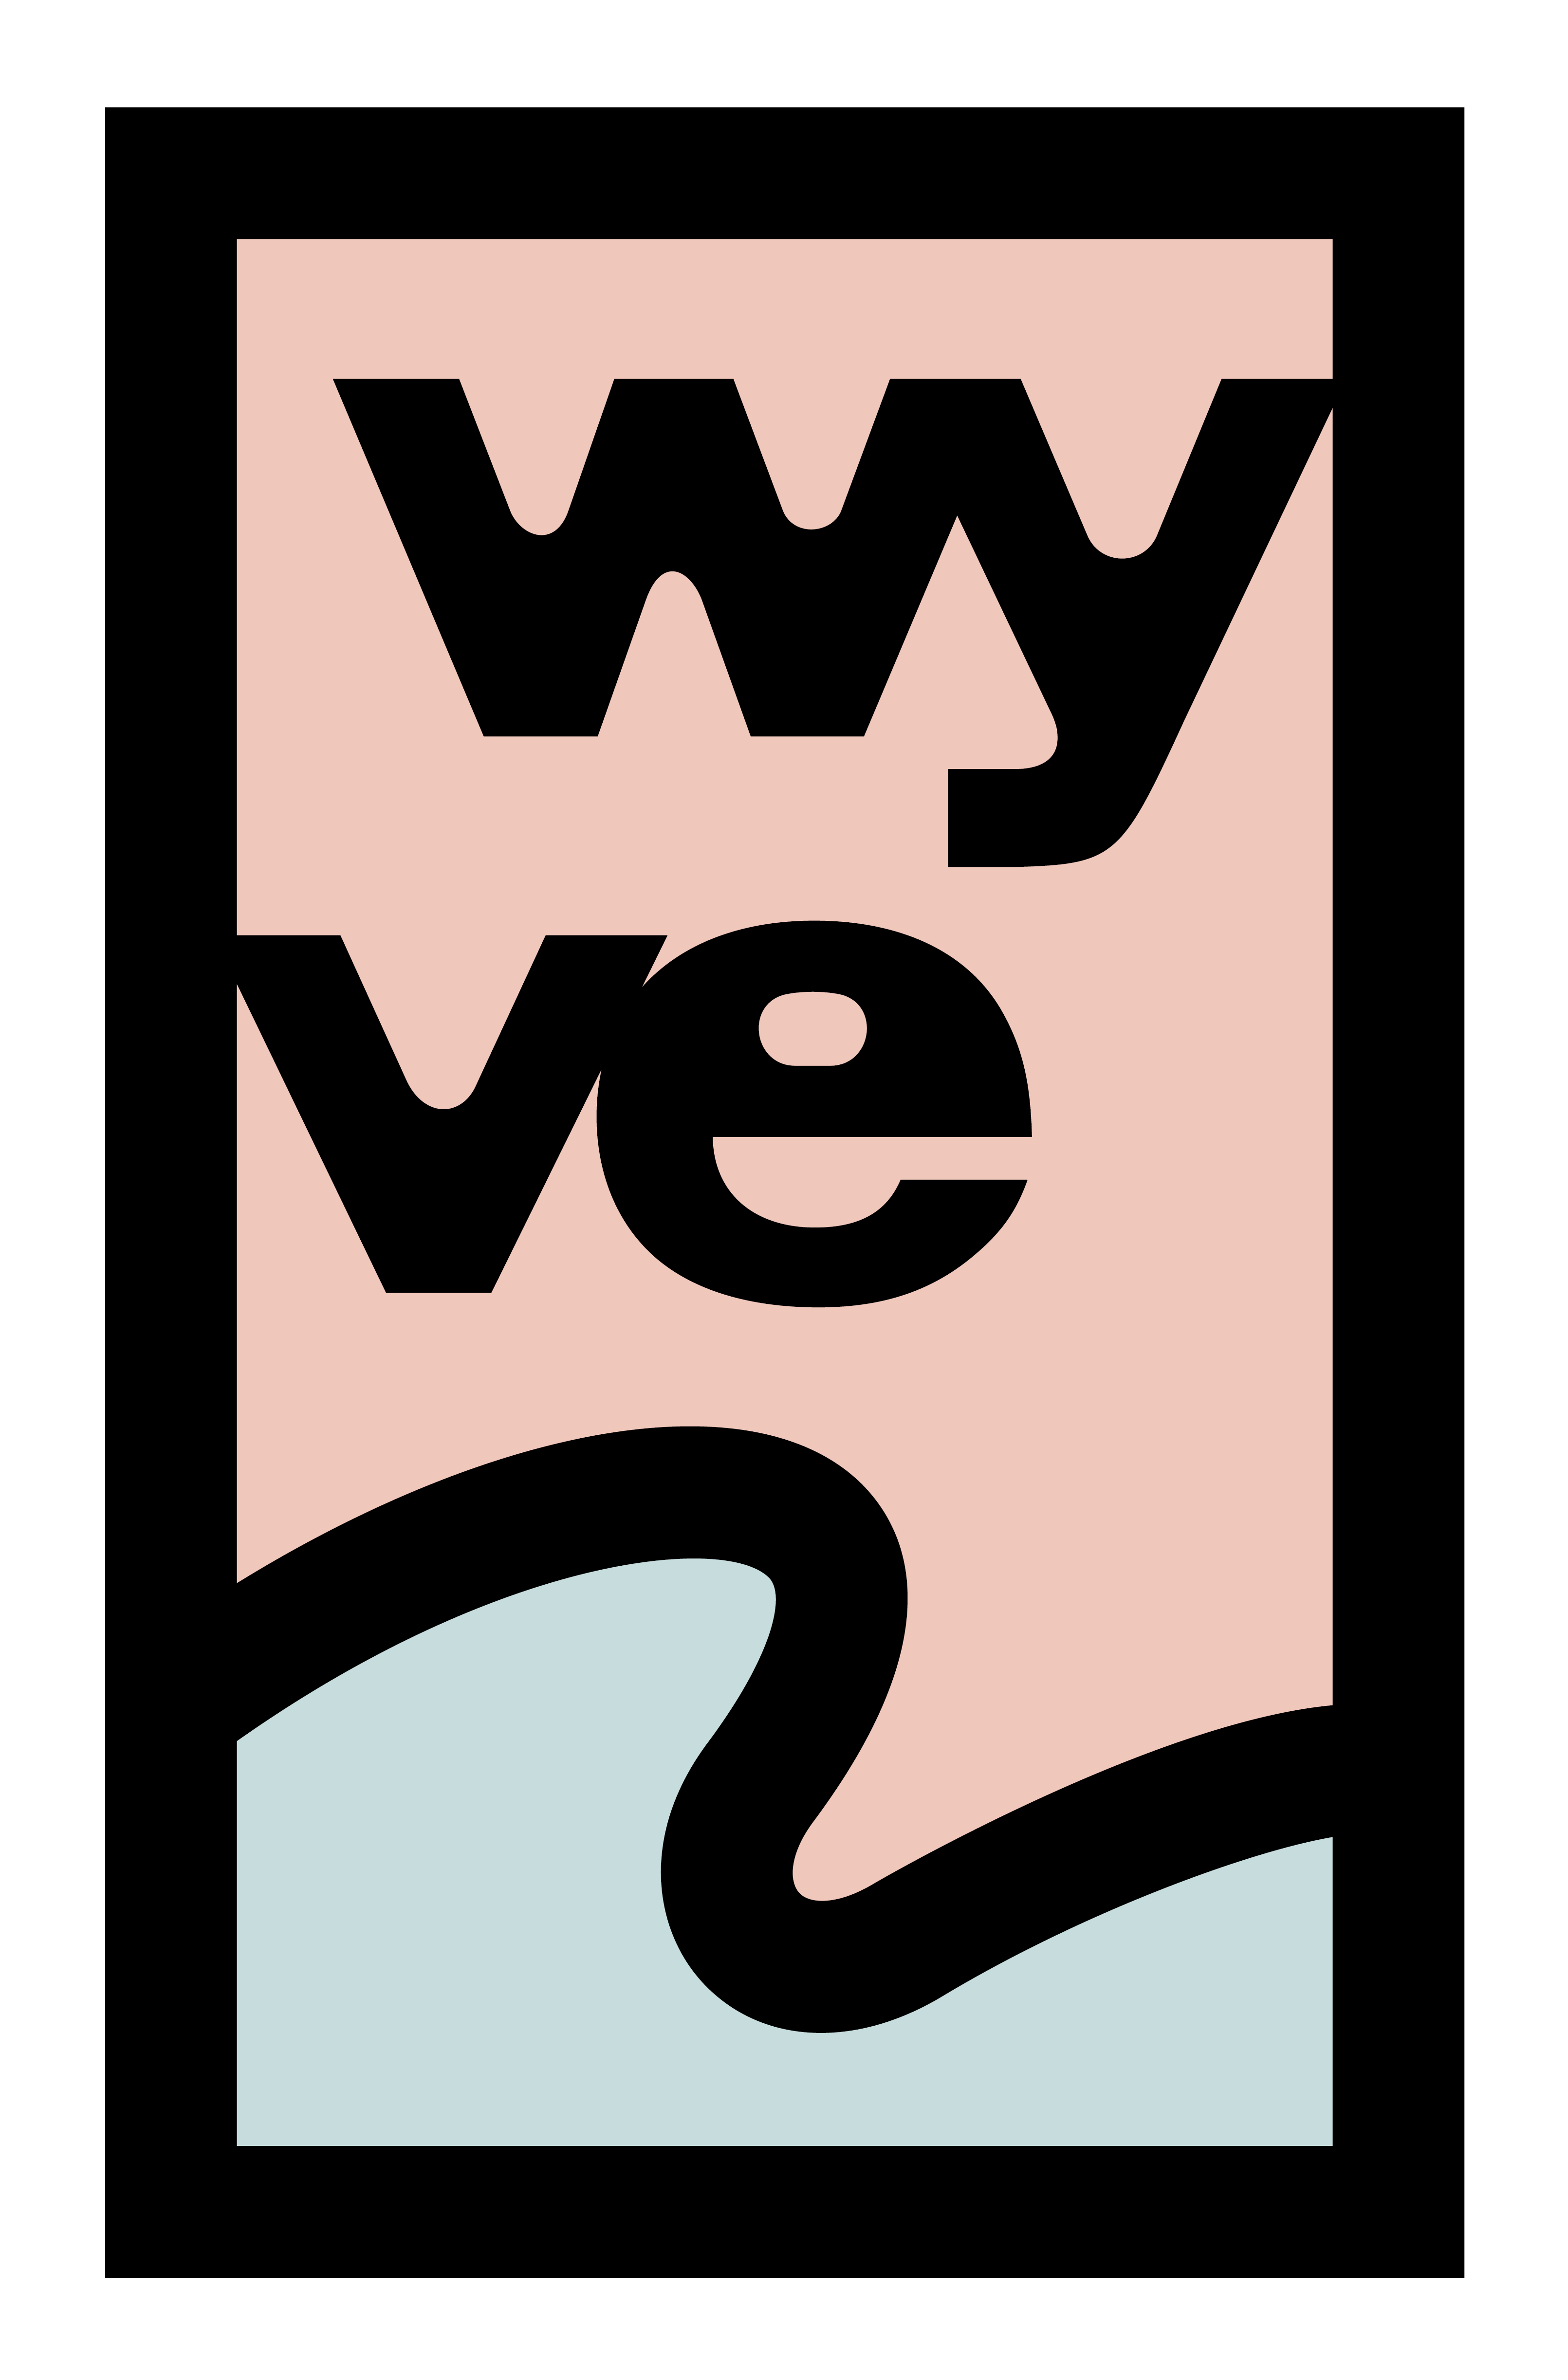 logo wyve primary colored